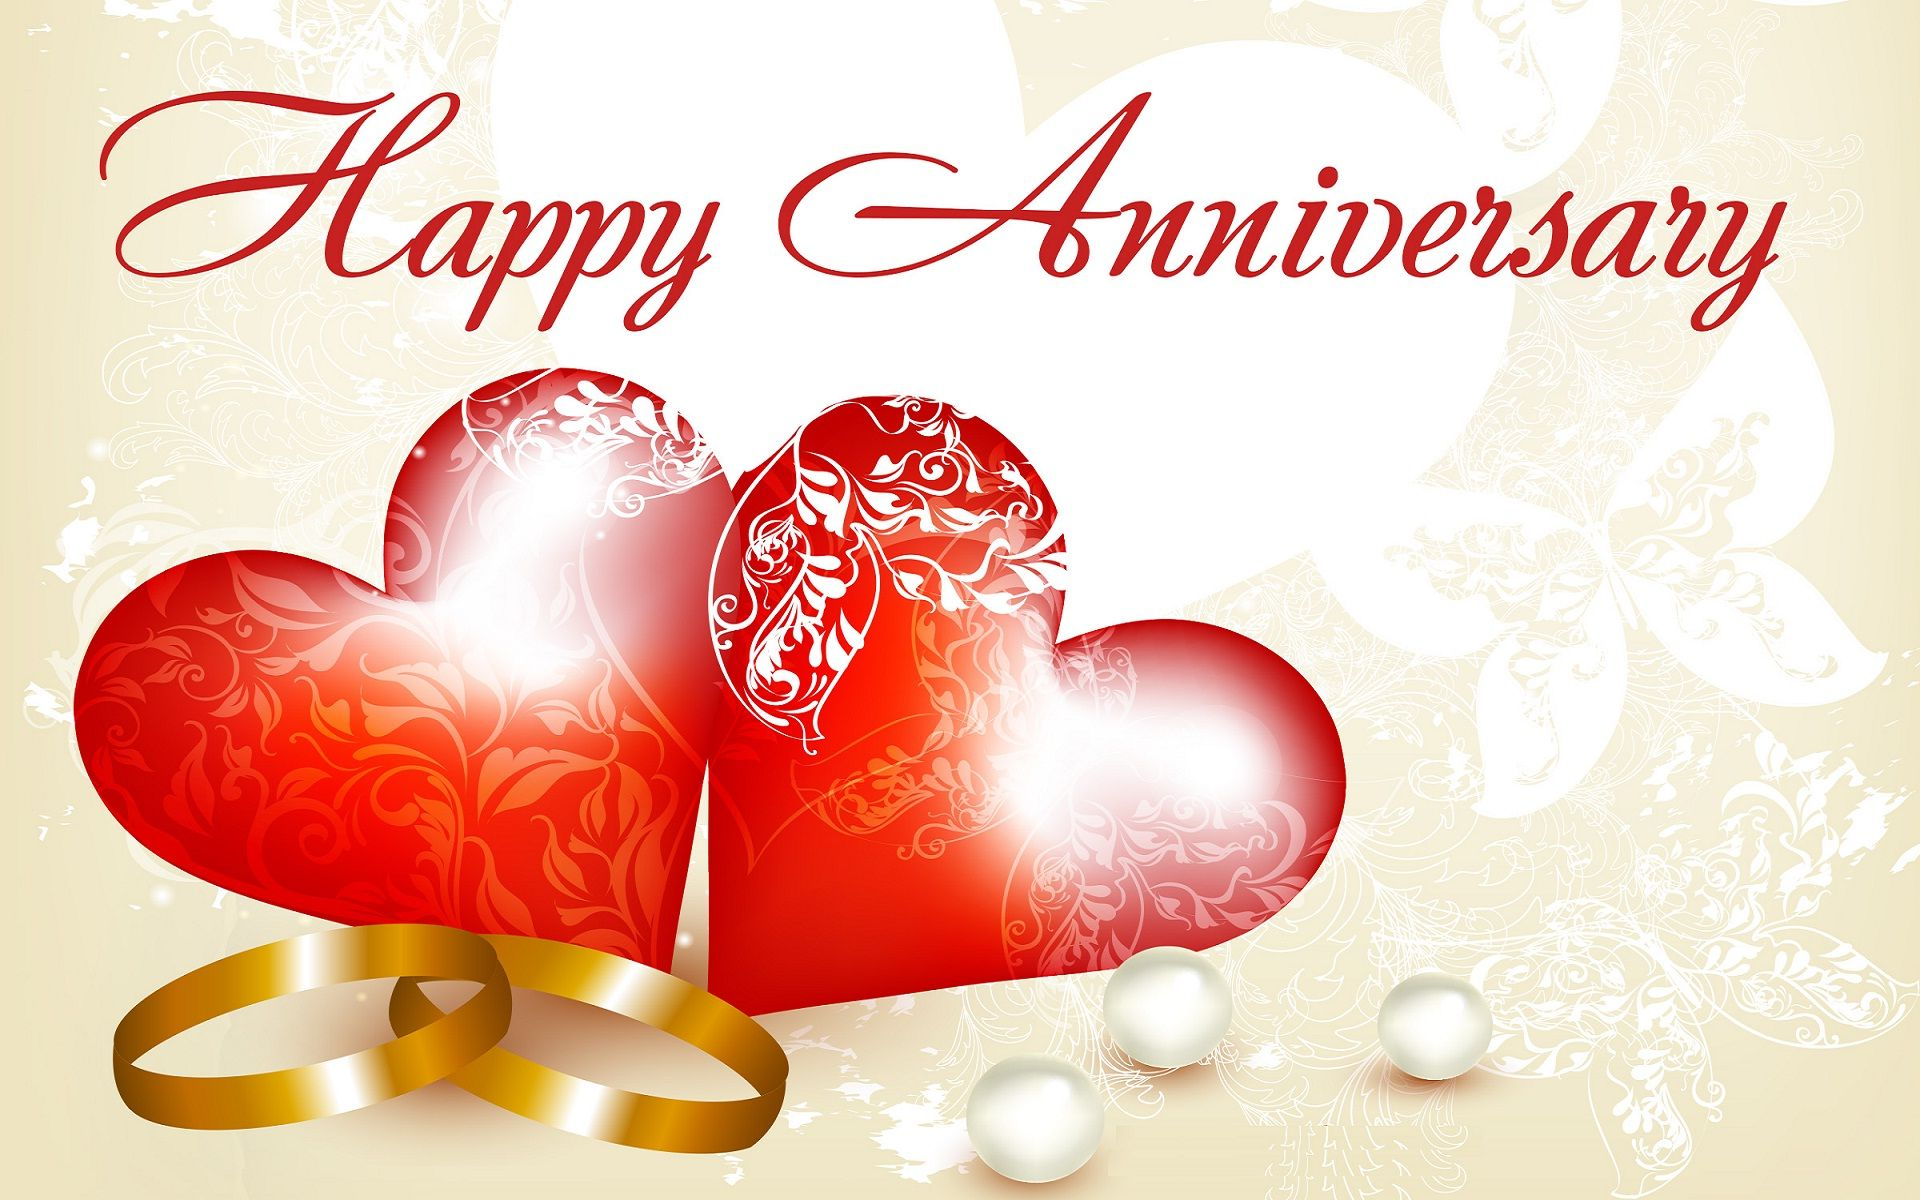 Happy Wedding Anniversary Rings Wide Hd Wallpapers Wallpapers